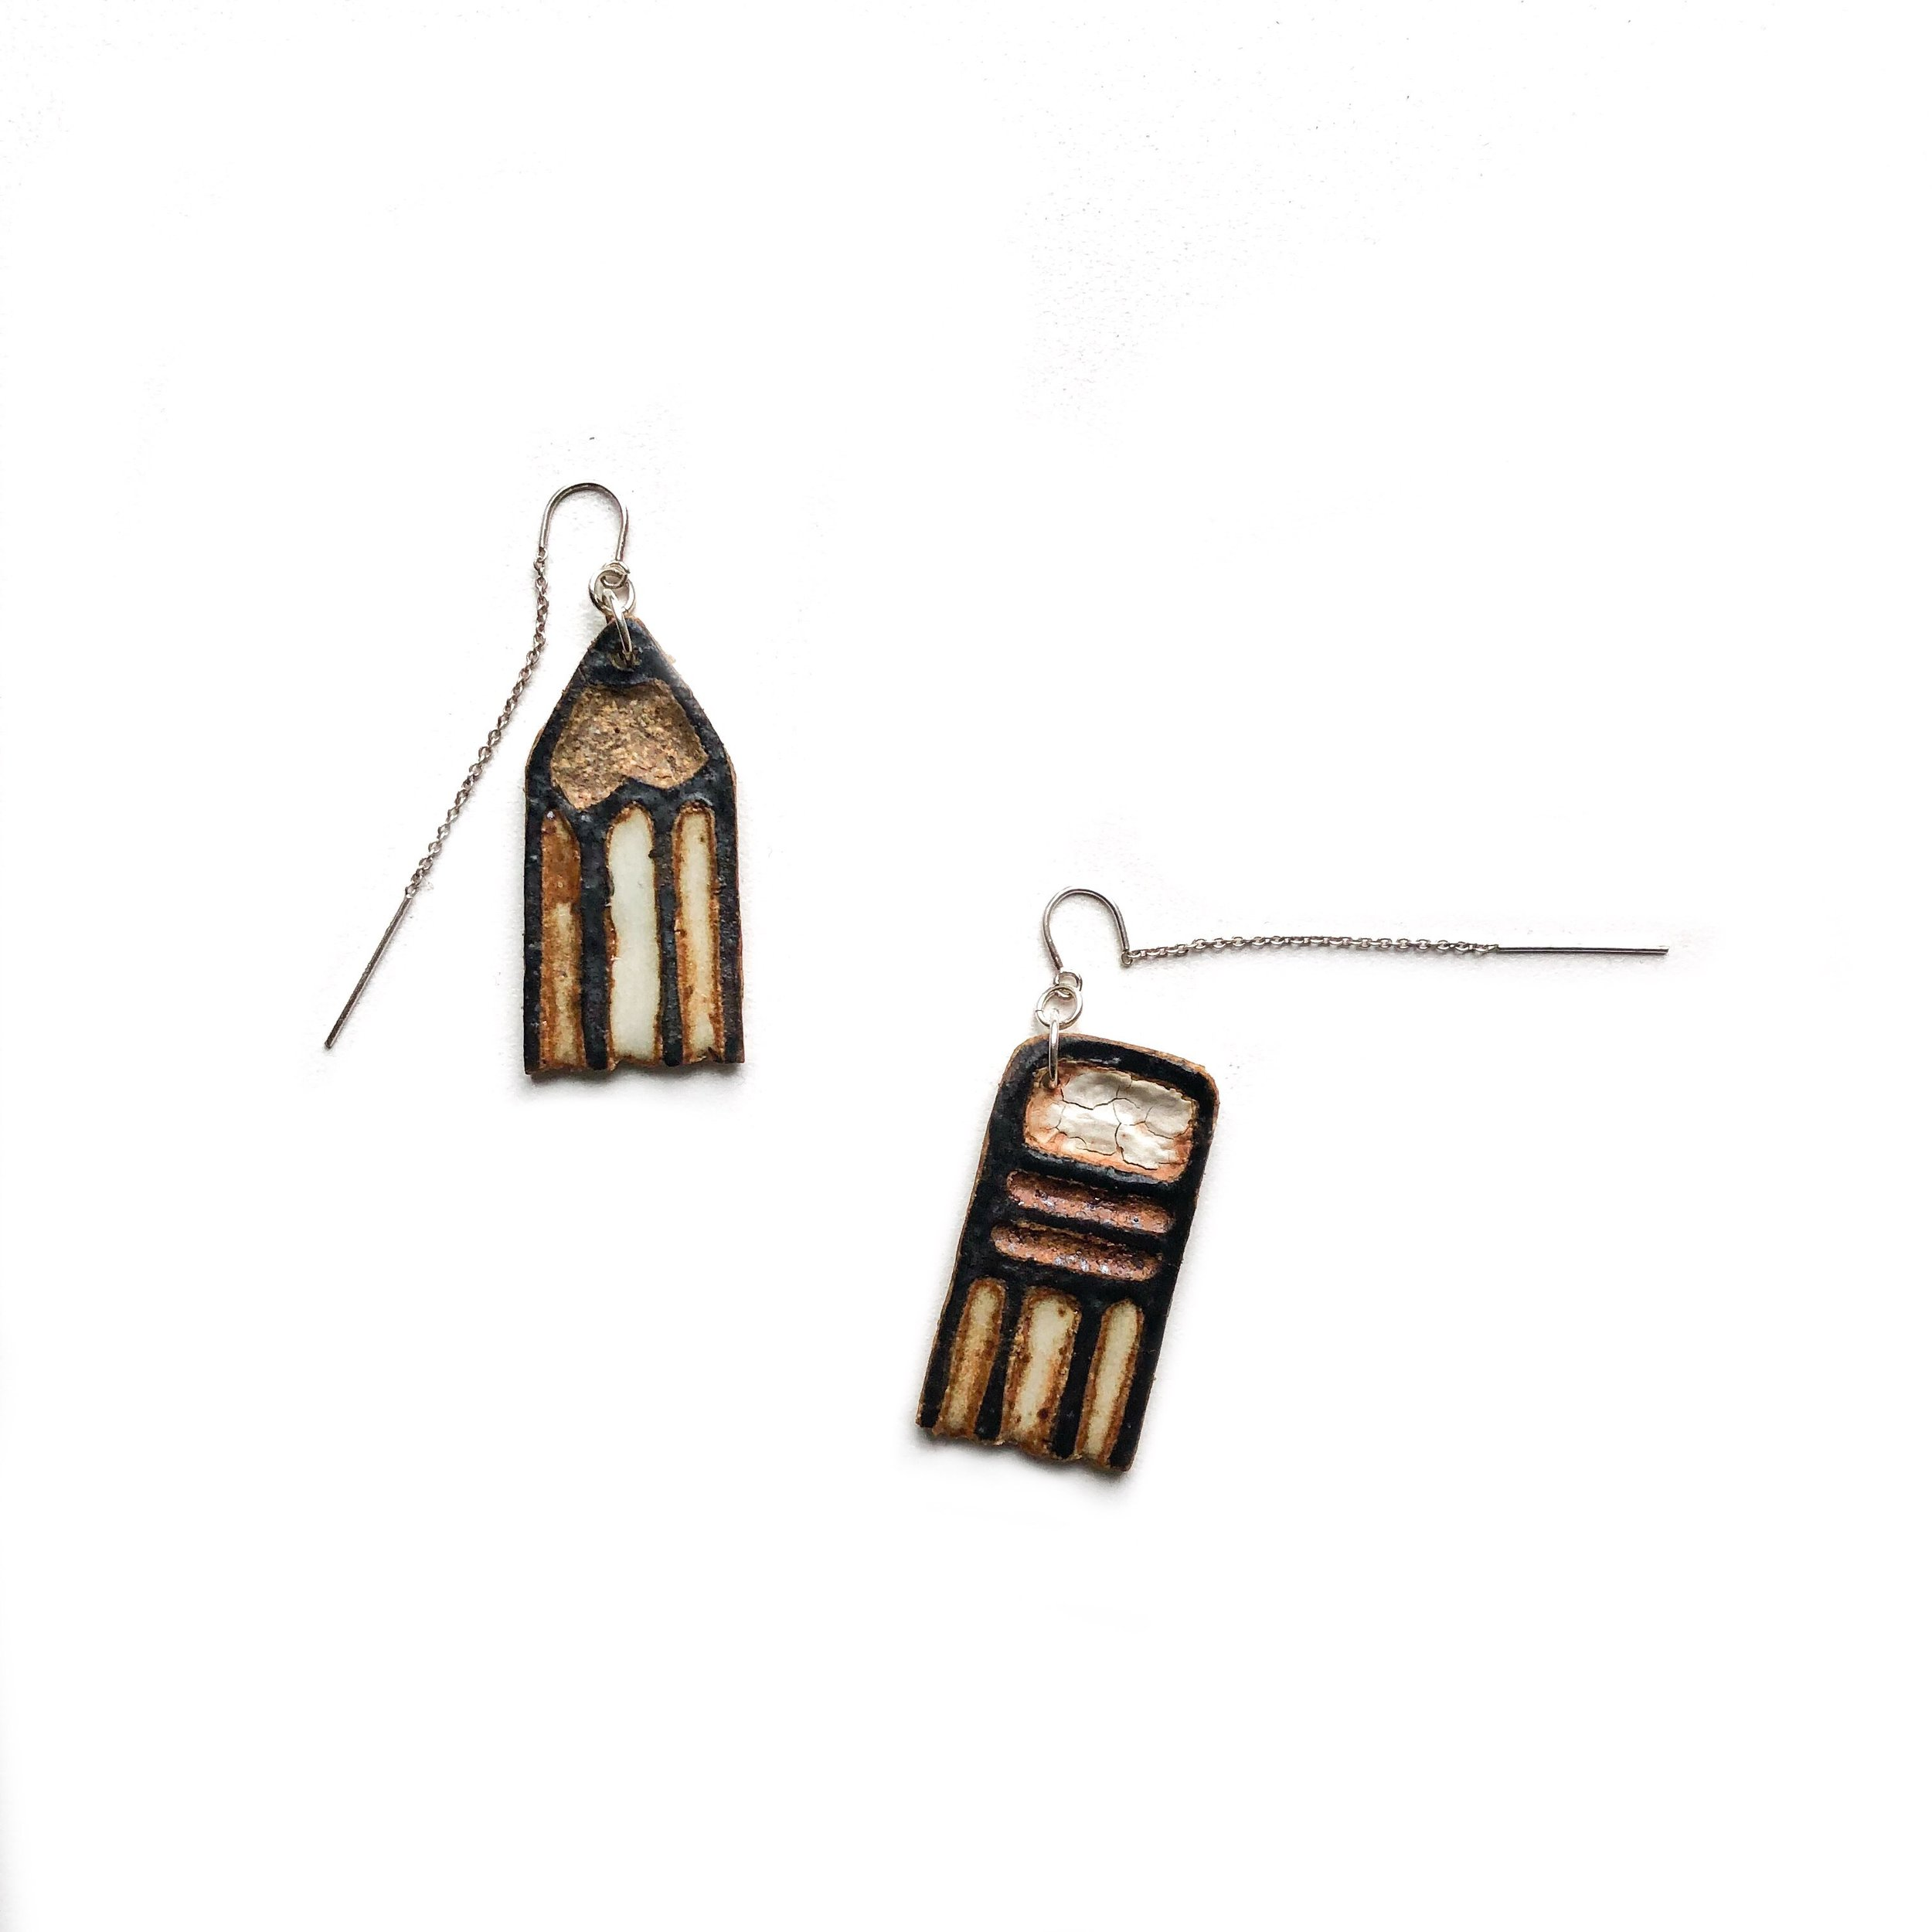 kushins_ceramic_earrings3.JPG